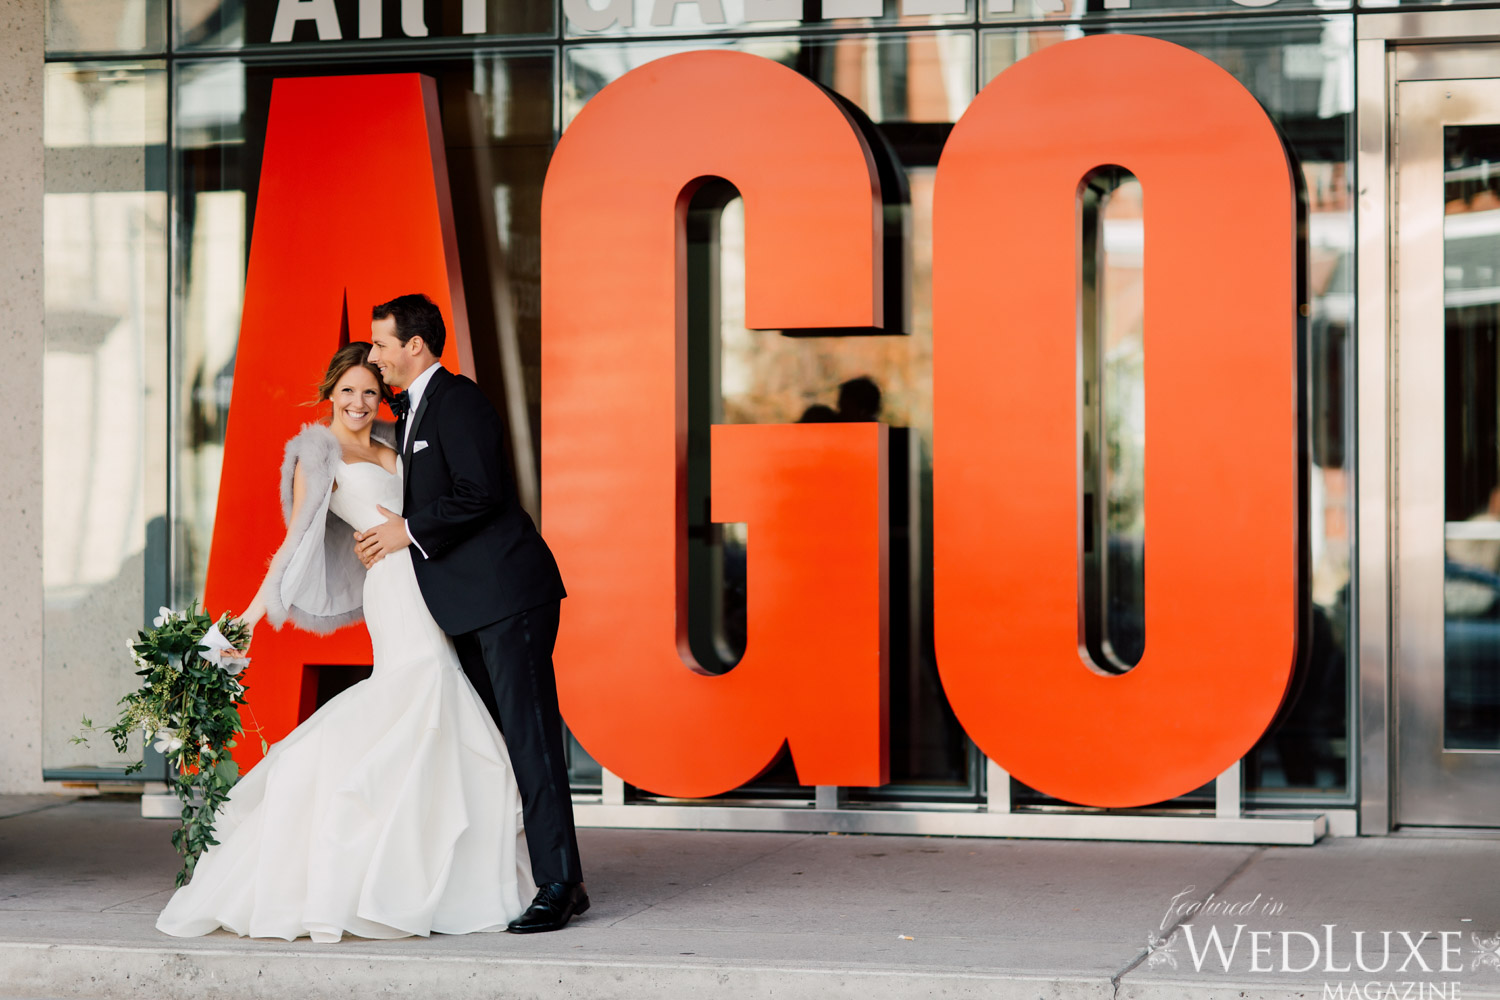 AGO bride and groom photos